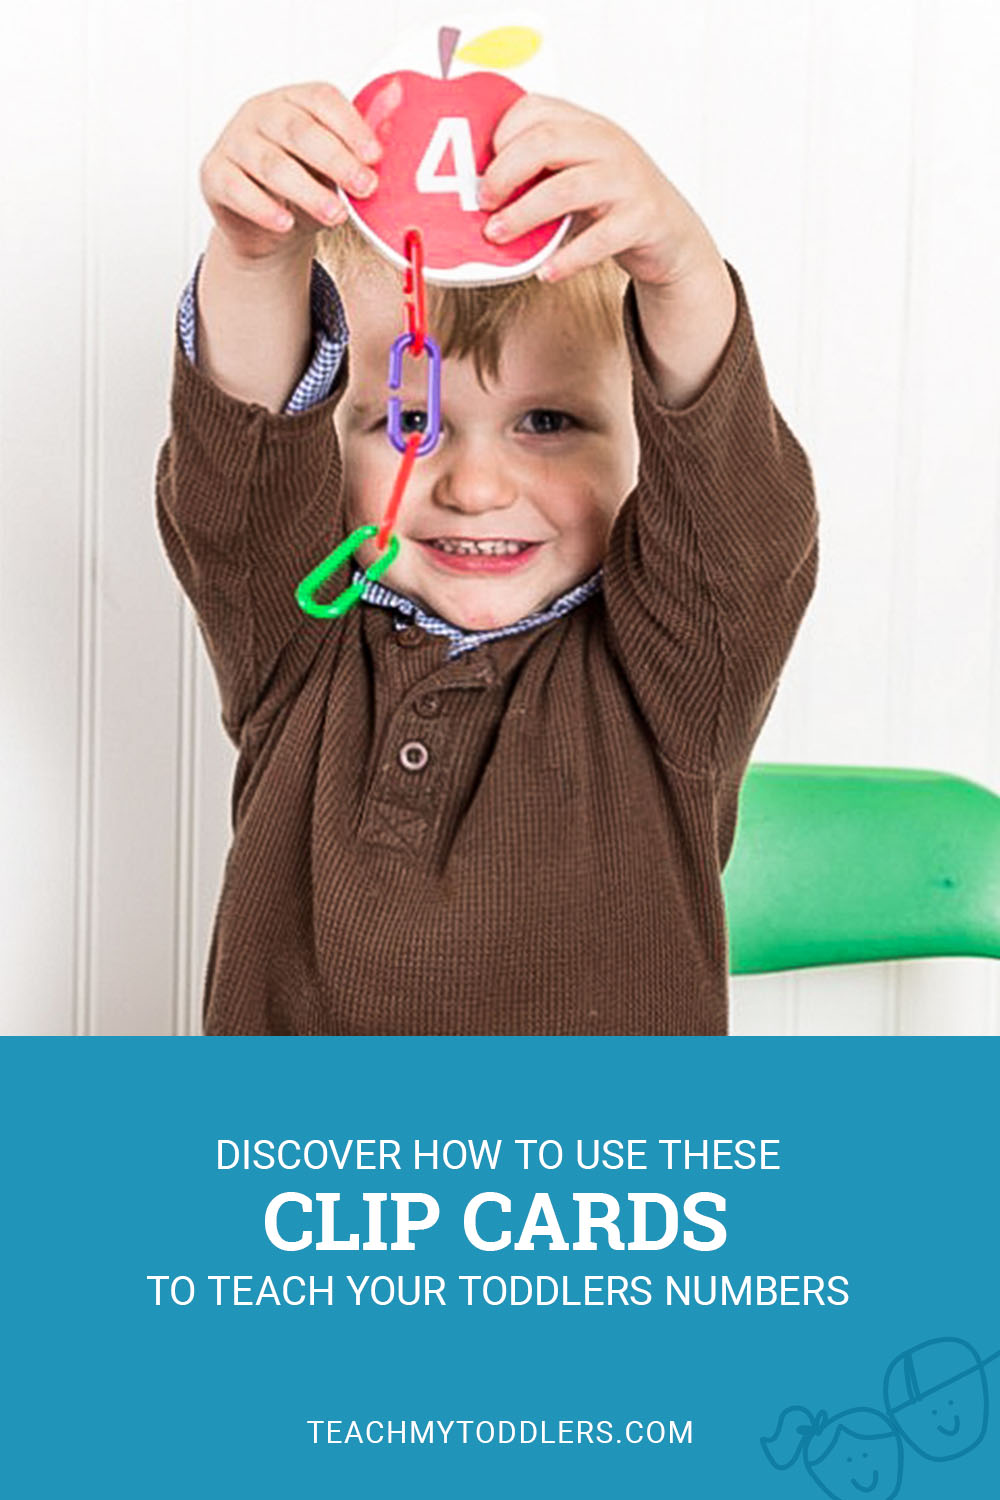 Discover how to use these clip cards to teach toddlers numbers